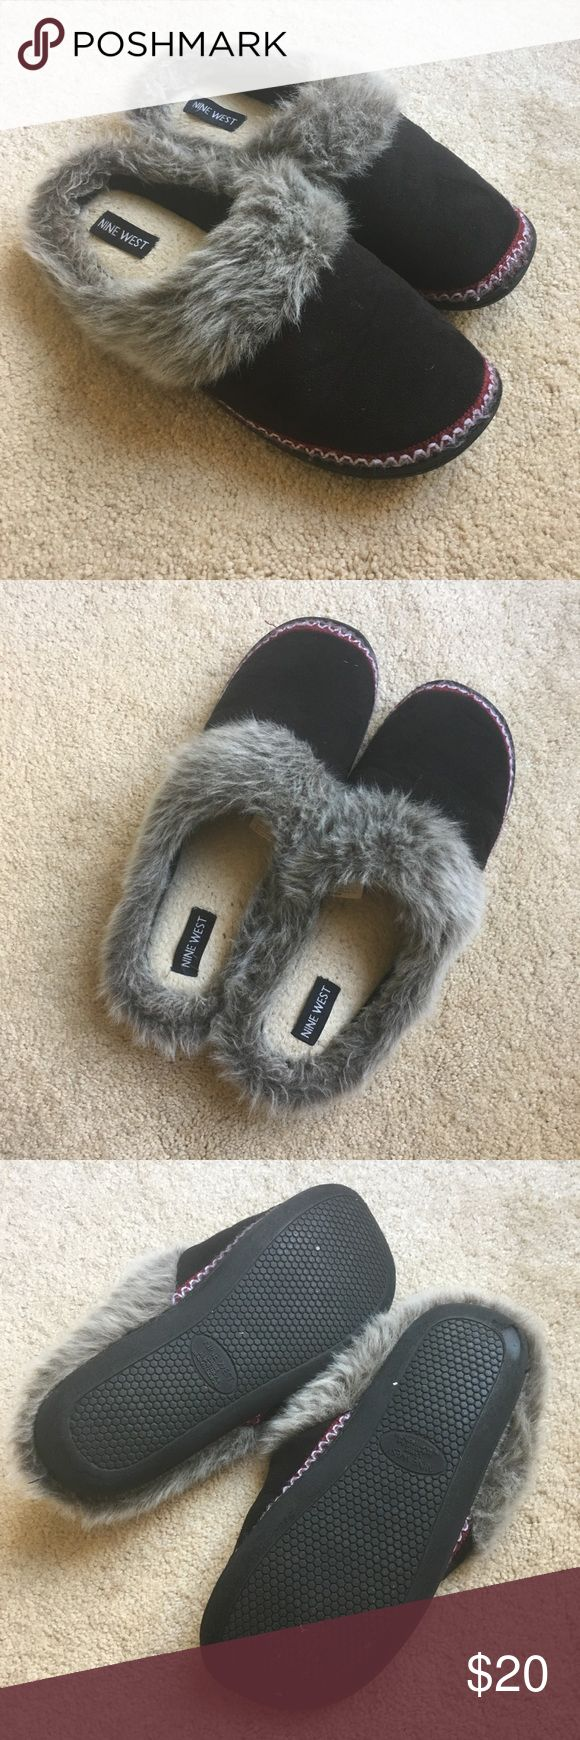 Nine West Slippers House Shoes Gently used, normal signs of wear. Quality Nine West make. Faux fur detail. US size 9-10. Soft, lightweight with durable bottoms for indoor and outdoor wear. Nine West Shoes Slippers